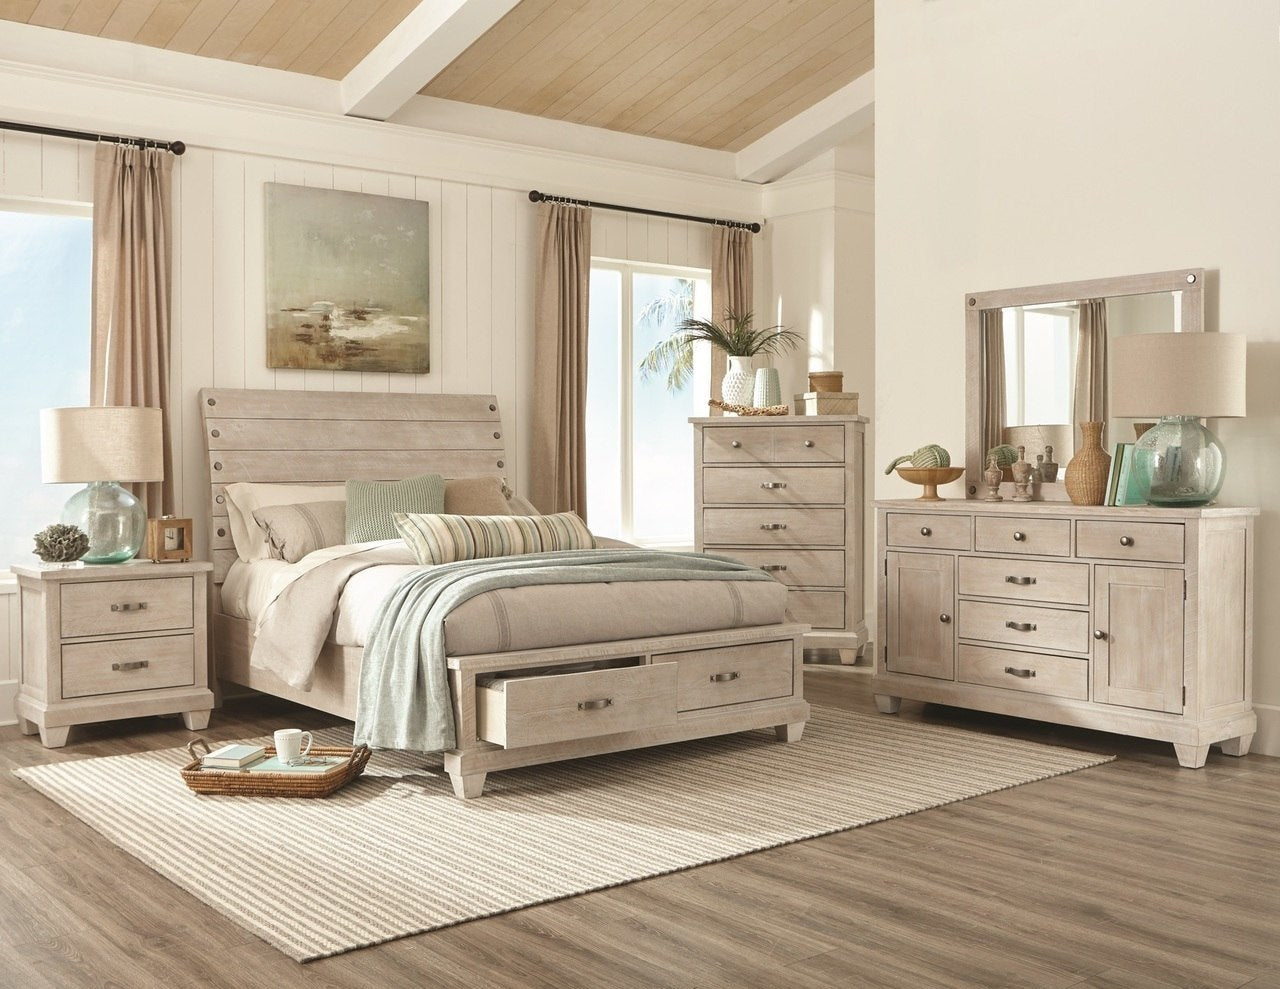 White Wash Country King Bedroom Set My Furniture Place